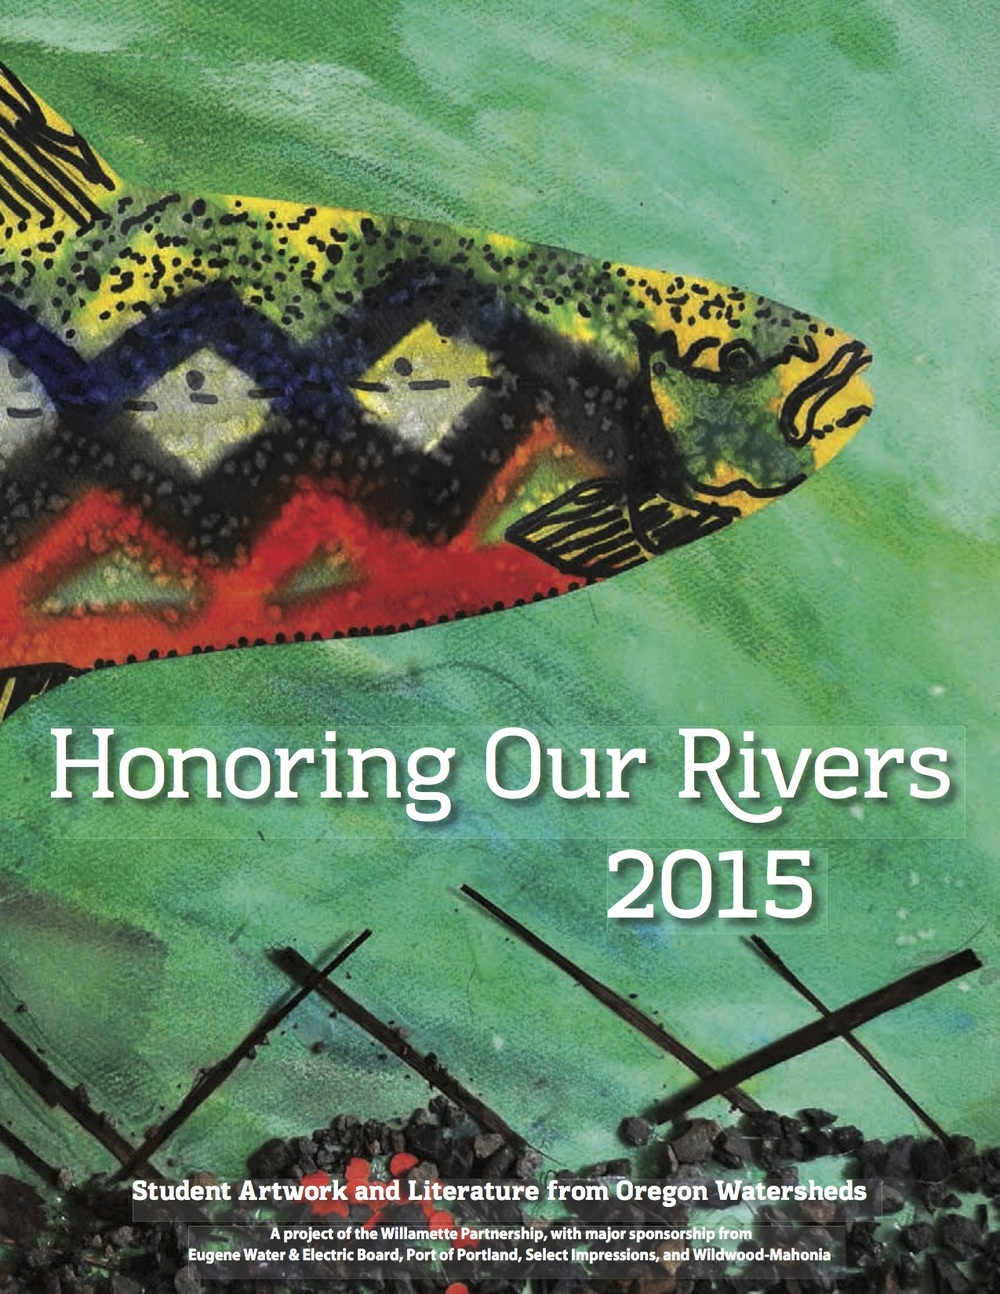 Honoring Our Rivers 2015